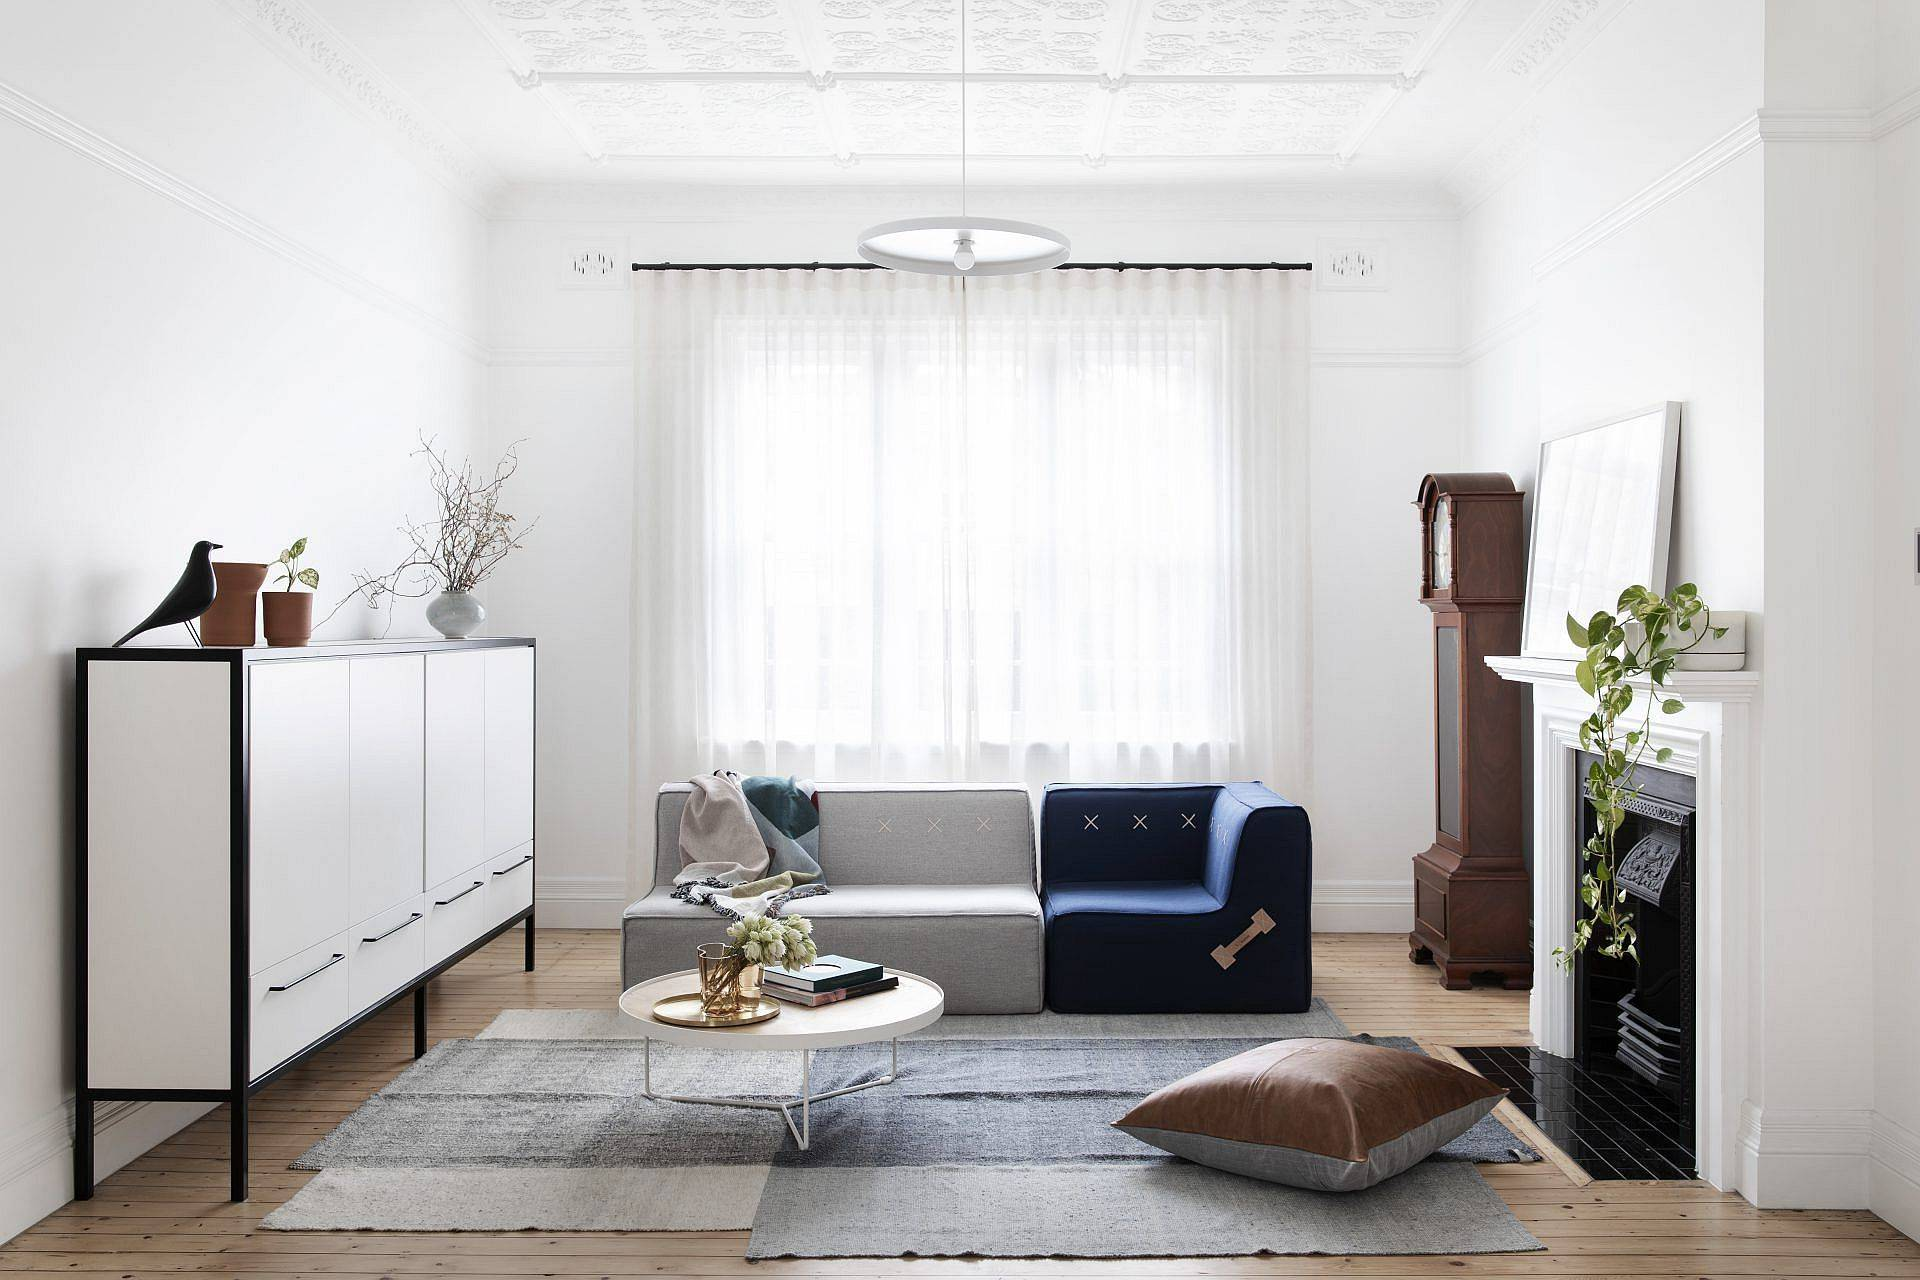 Contemporary-style-living-room-of-the-home-with-polished-decor-pieces-and-a-hint-of-blue-33910